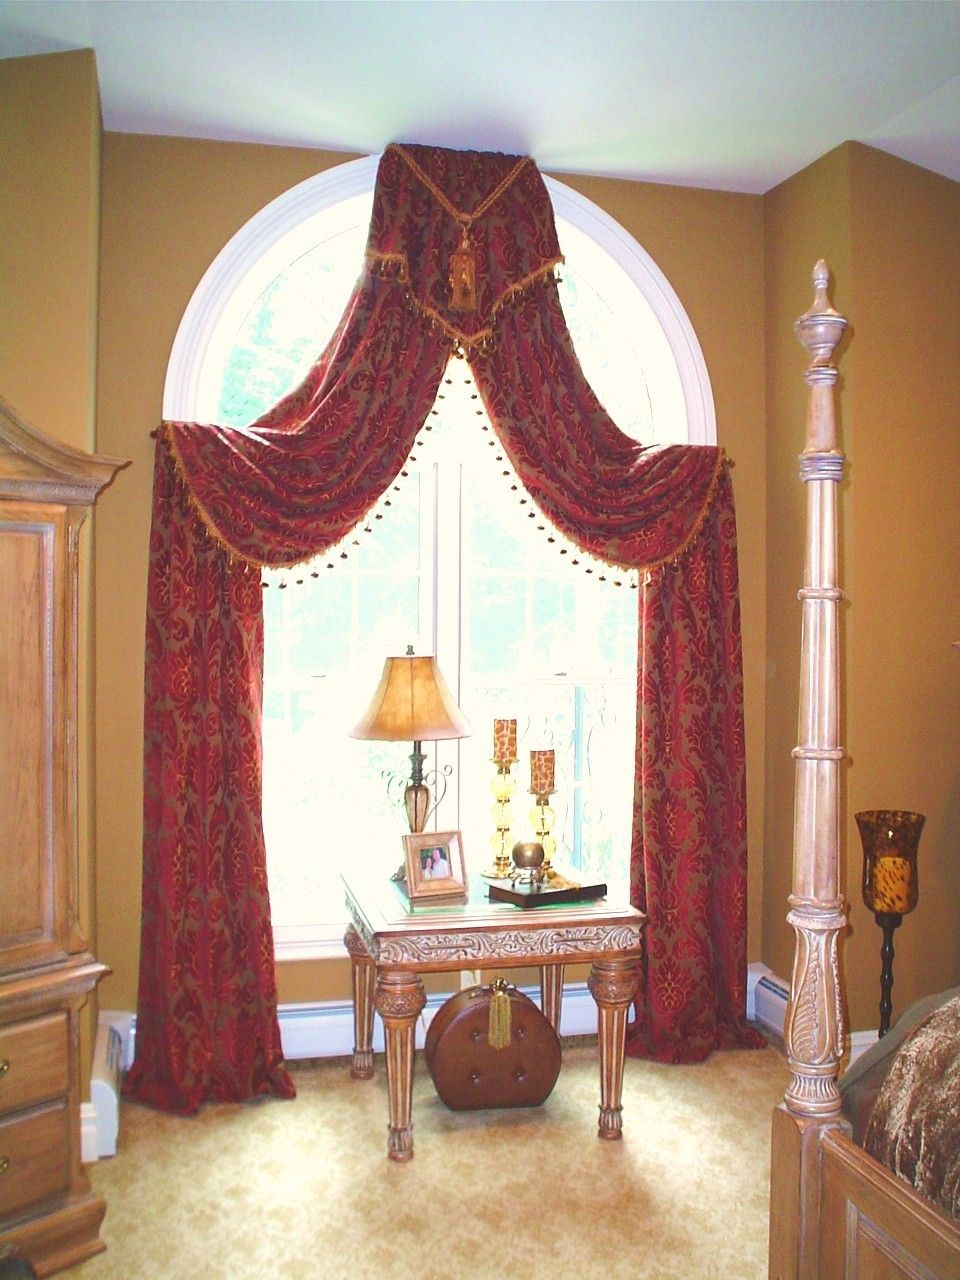 Window treatment for arch window - Arched Window Treatment Window Treatments Drama Pinterest